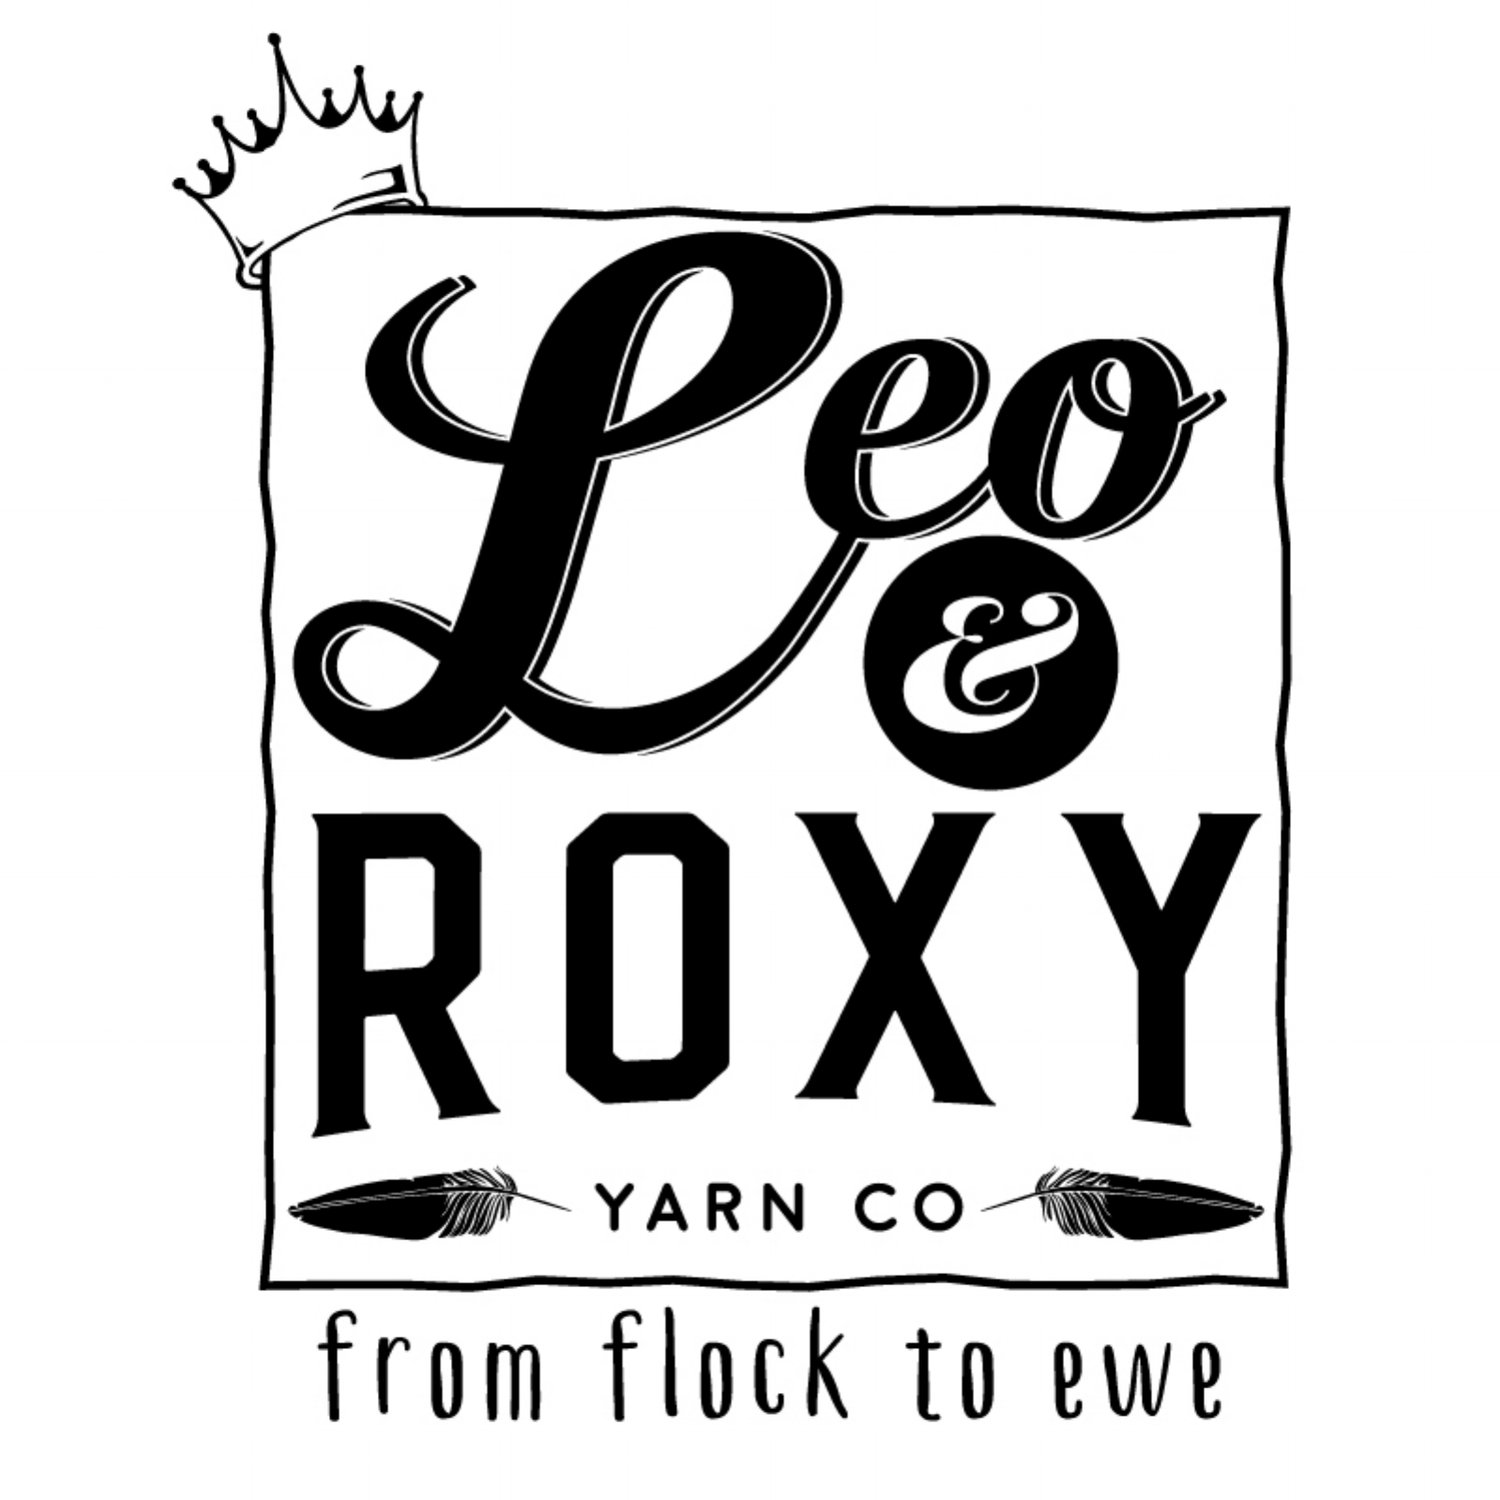 Leo and Roxy Yarn Co.